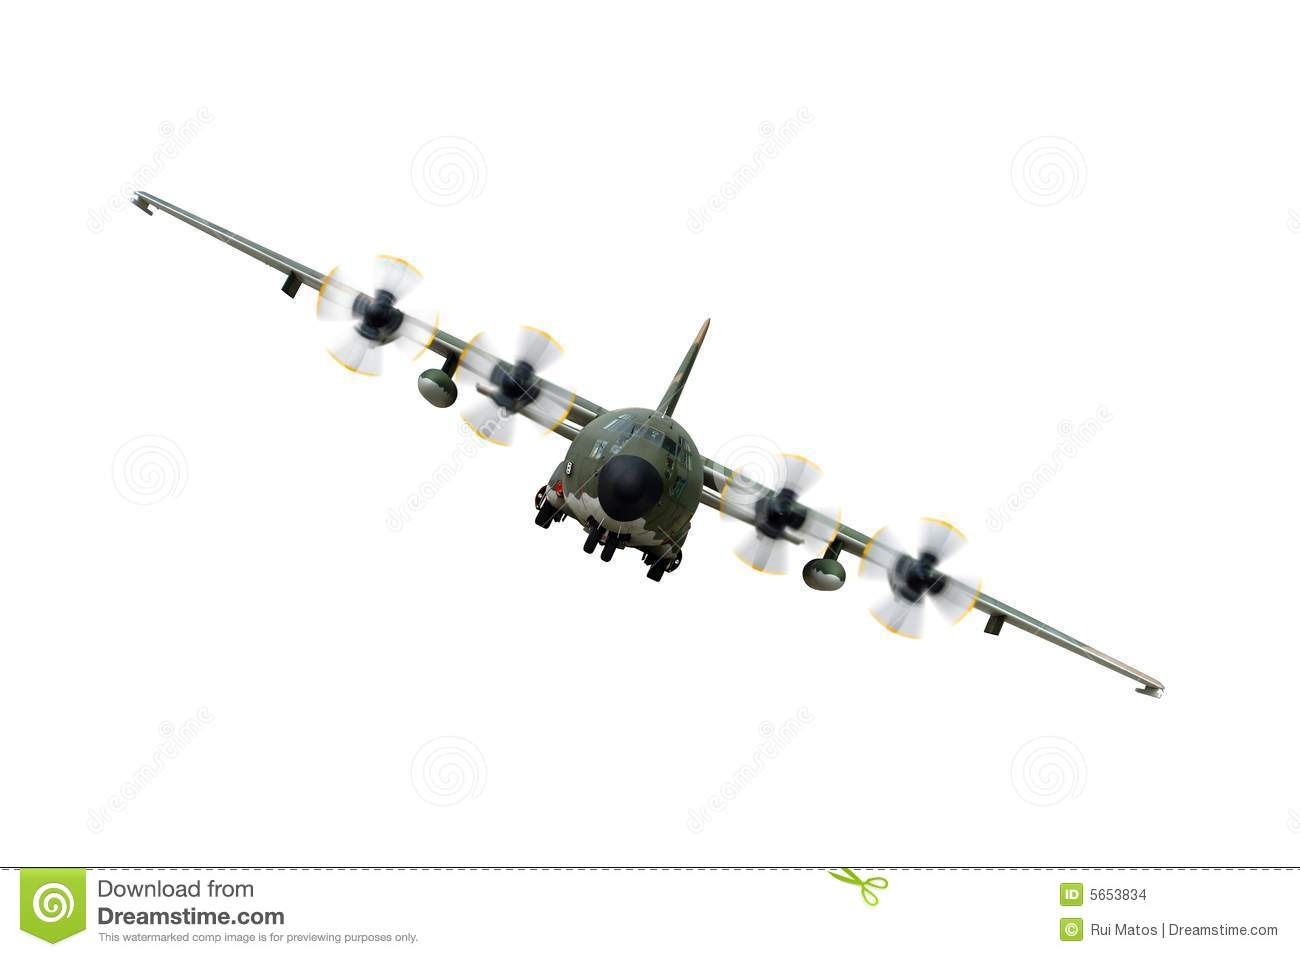 Stock Images C130 Military Airplane Image5653834 moreover Royalty Free Stock Images Black White Roses Border Design Image4492009 in addition Royalty Free Stock Image Barber Icon Creative Design Image34762876 additionally Carte as well Royalty Free Stock Photos Tree Branches Which Notes Image30261168. on us map of states picture